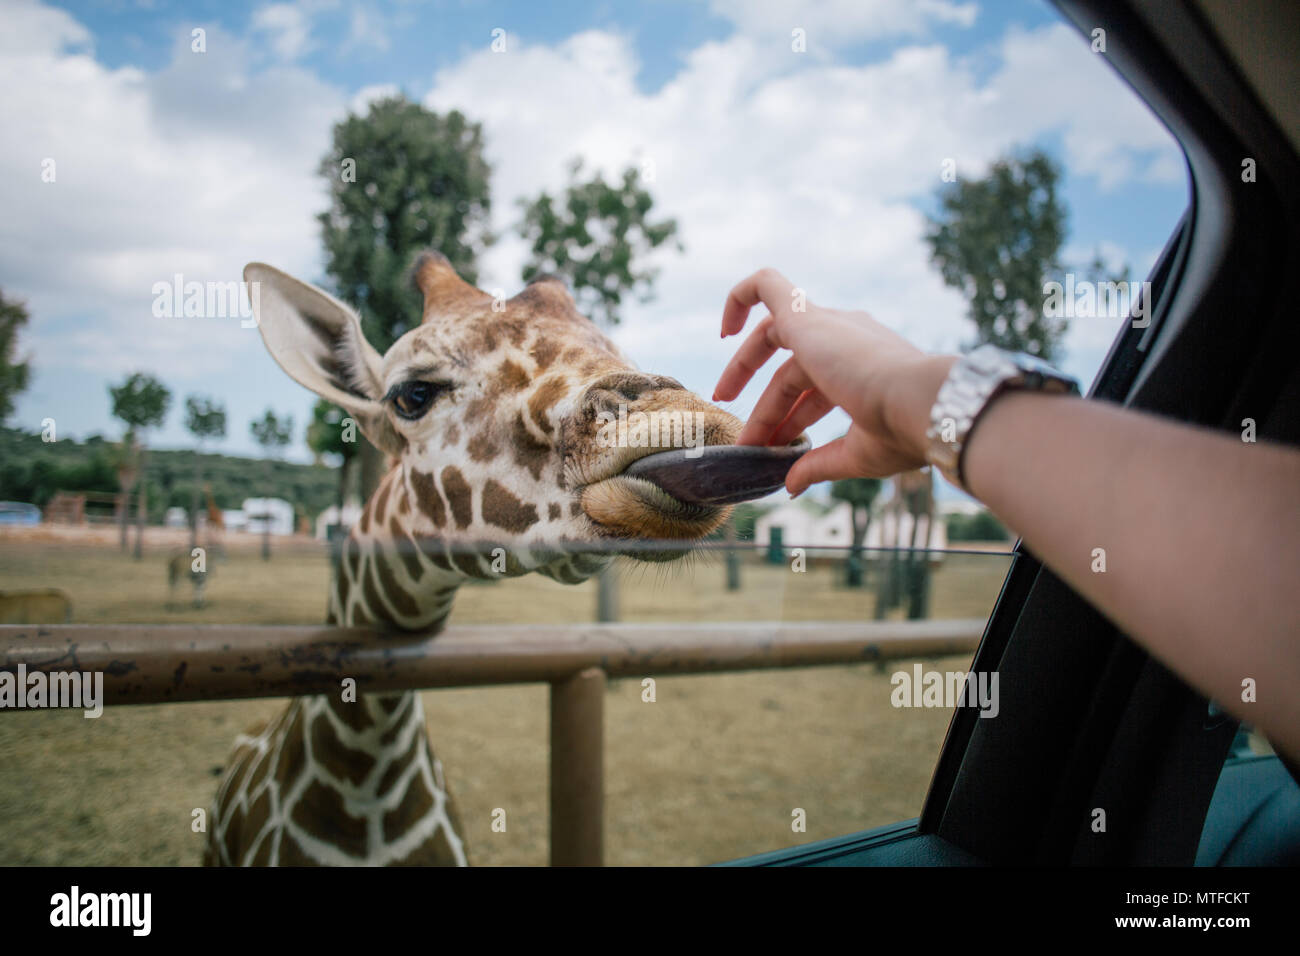 Giraffe and human hand in Fasano apulia safari zoo Italy - Stock Image